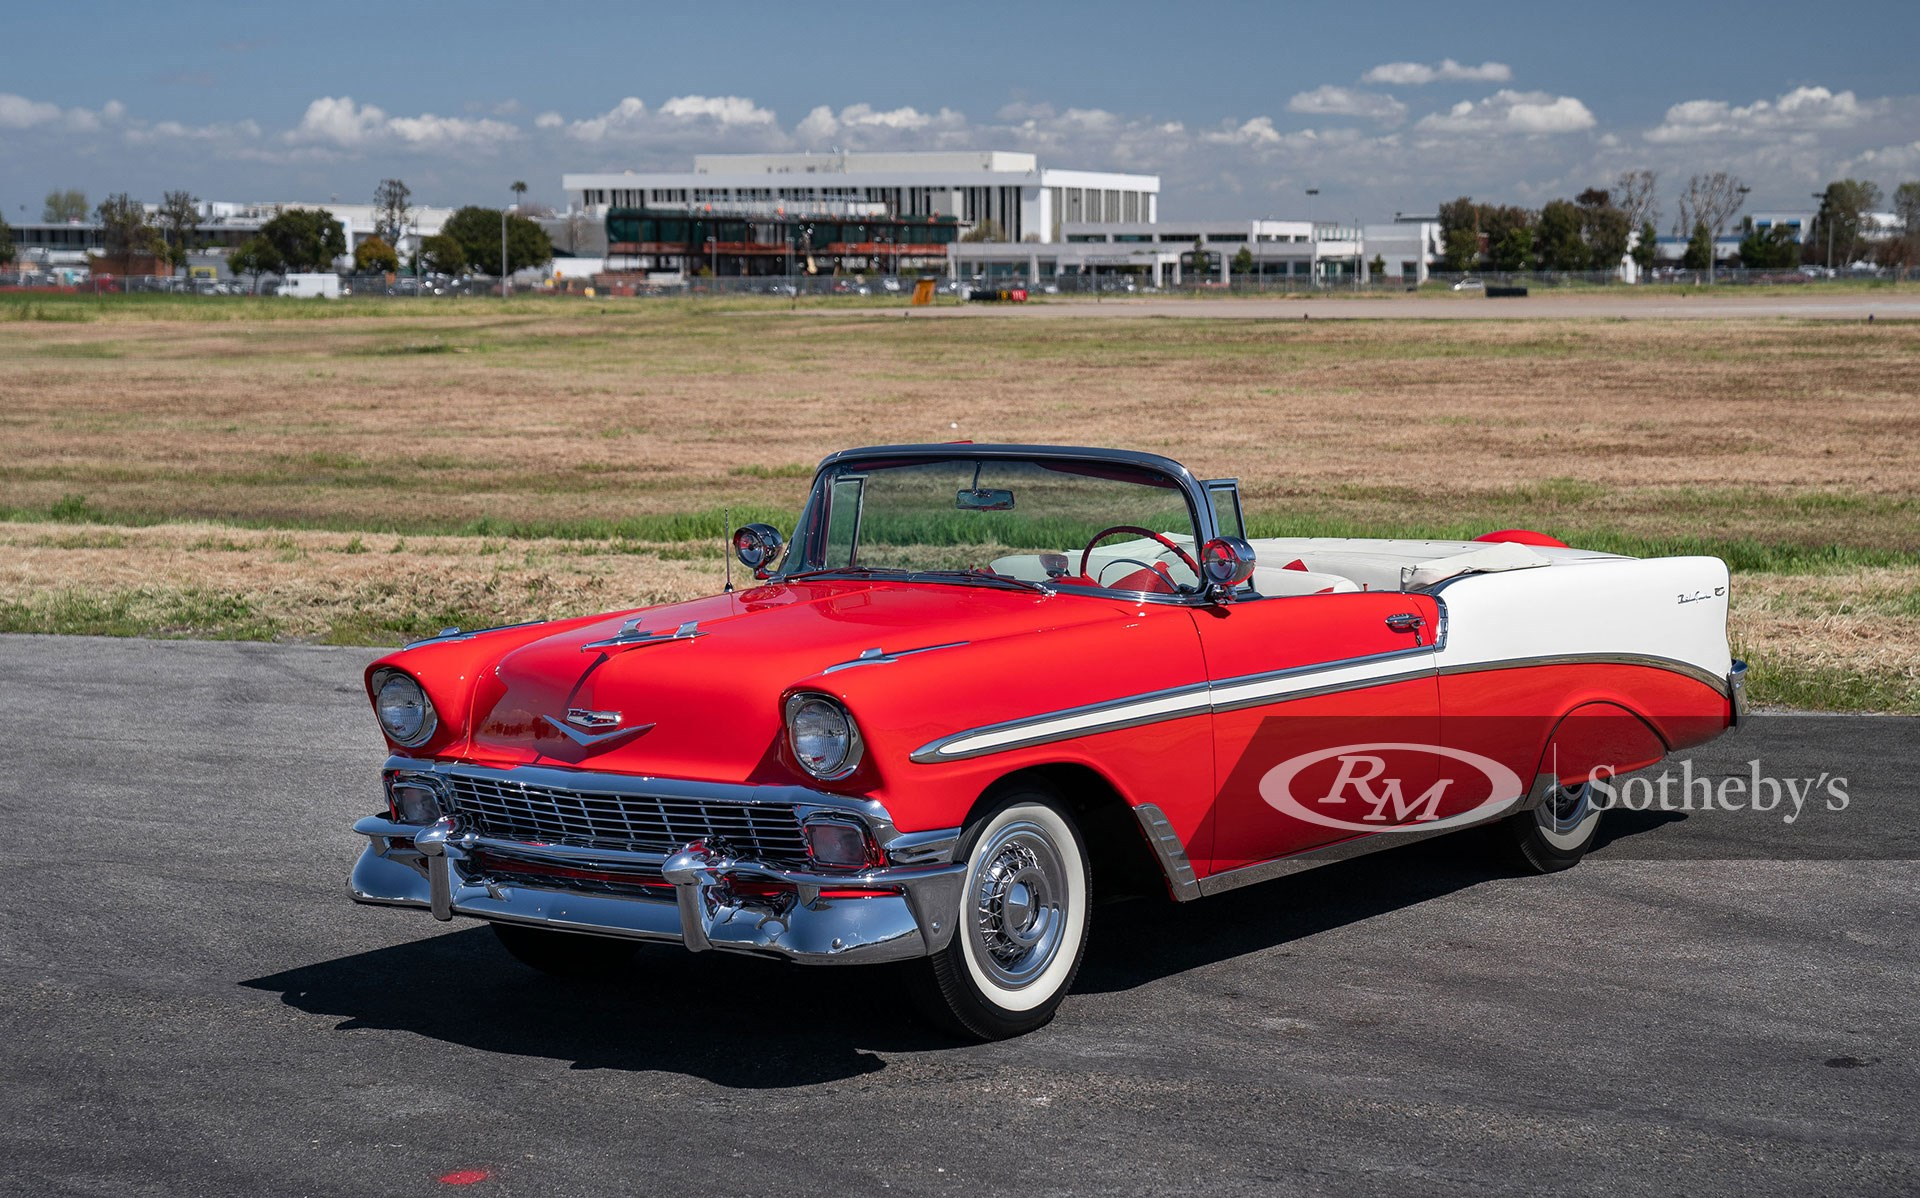 RM Sotheby's Arizona Scottsdale 2021, Blog, 1956 Chevrolet Bel Air Convertible